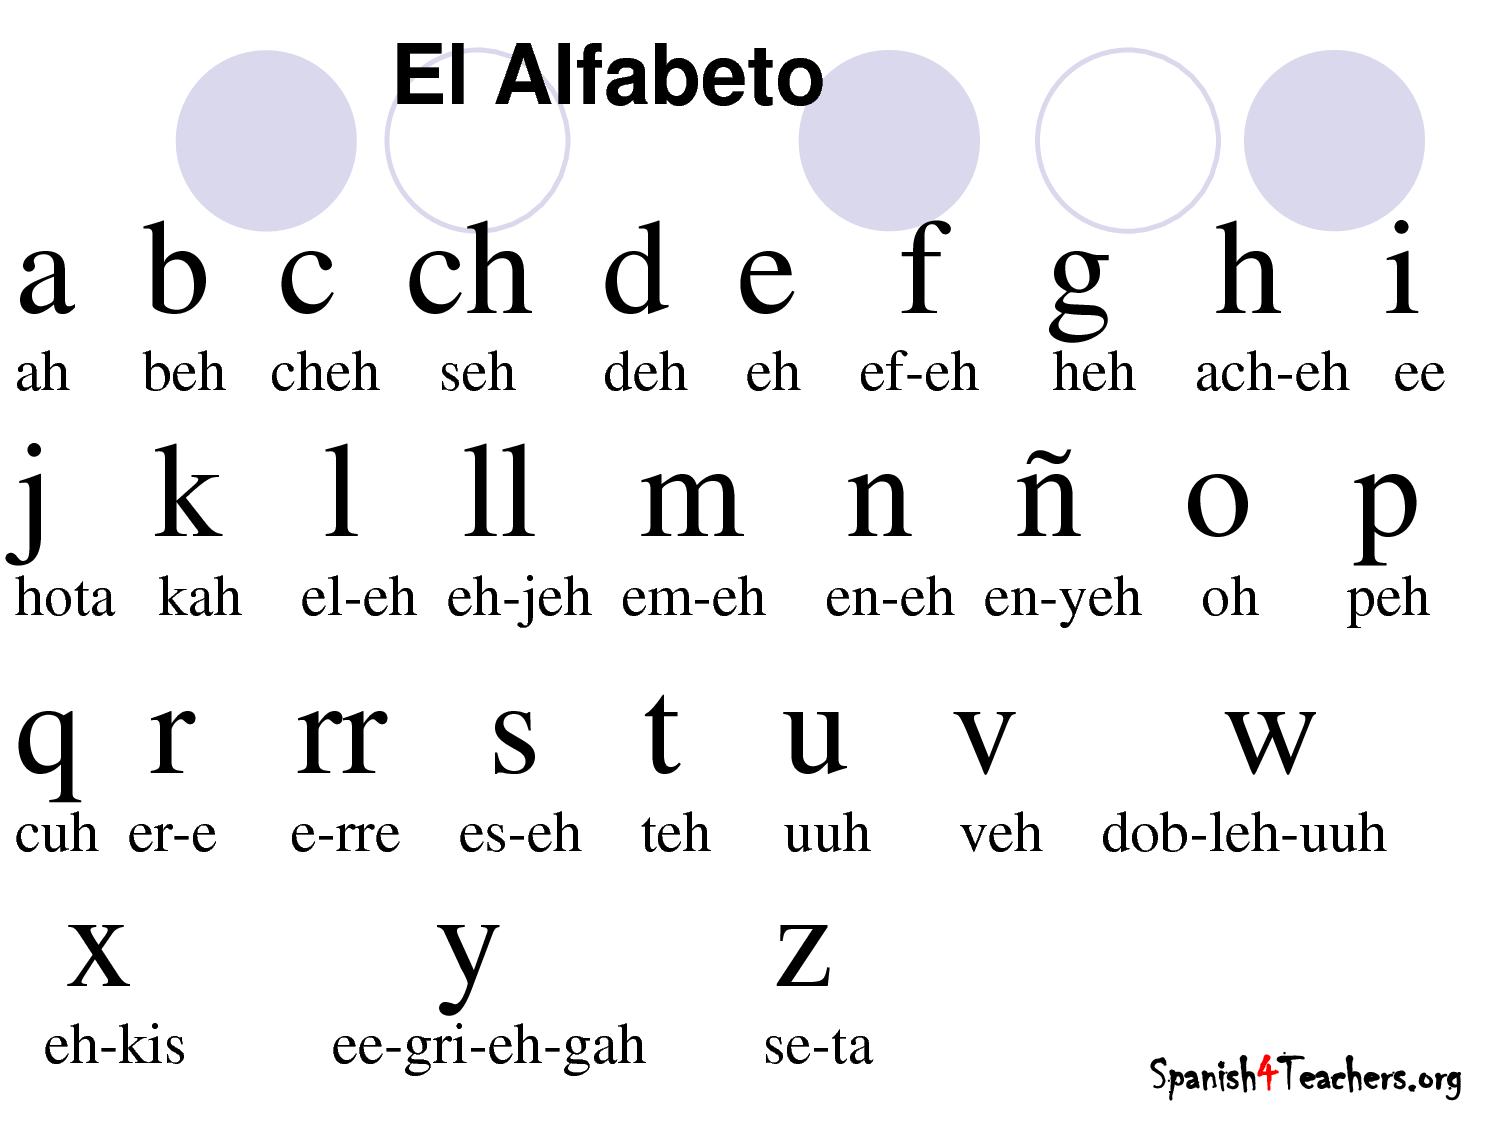 This Is A Chart Of The Spanish Alphabet The Main Language